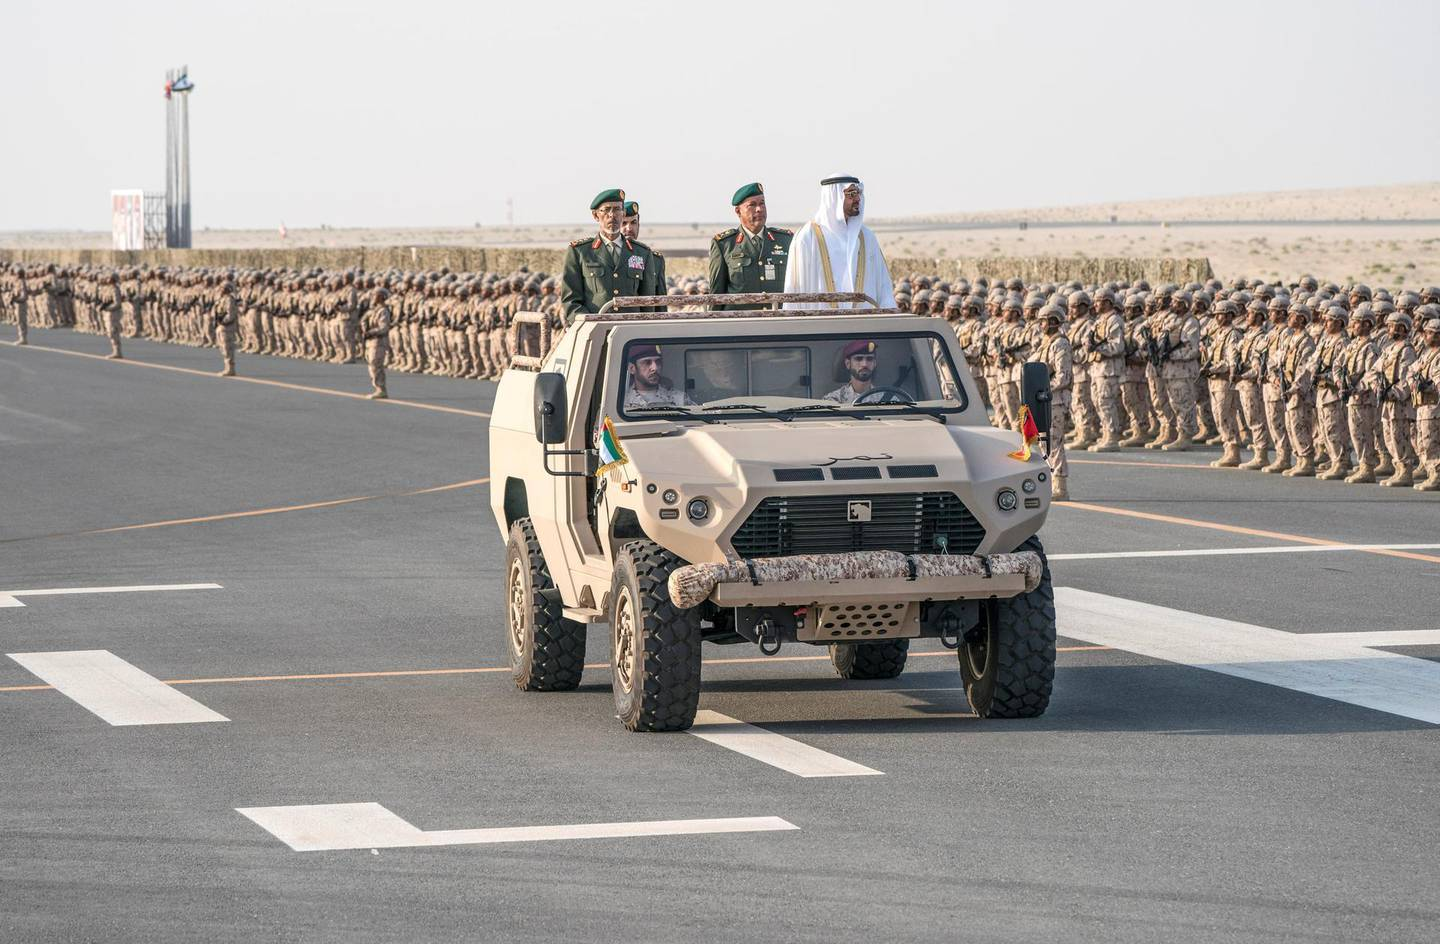 ZAYED MILITARY CITY, ABU DHABI, UNITED ARAB EMIRATES - November 28, 2017: HH Sheikh Mohamed bin Zayed Al Nahyan Crown Prince of Abu Dhabi Deputy Supreme Commander of the UAE Armed Forces (center R), inspects the cadets during a graduation ceremony for the 8th cohort of National Service recruits and the 6th cohort of National Service volunteers at Zayed Military City. Seen with HE Lt General Hamad Thani Al Romaithi, Chief of Staff UAE Armed Forces (center L) and Brigadier Faisal Mohamed Al Shehhi (C).  ( Hamad Al Kaabi / Crown Prince Court - Abu Dhabi ) —